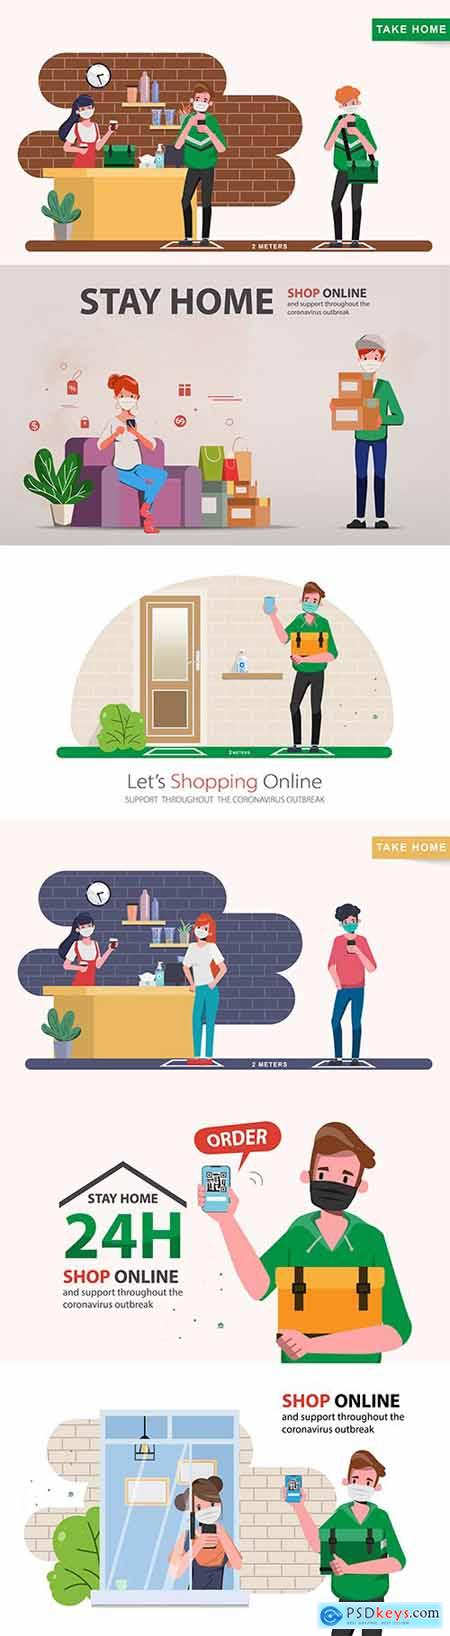 Coronavirus stay home and shop online with delivery